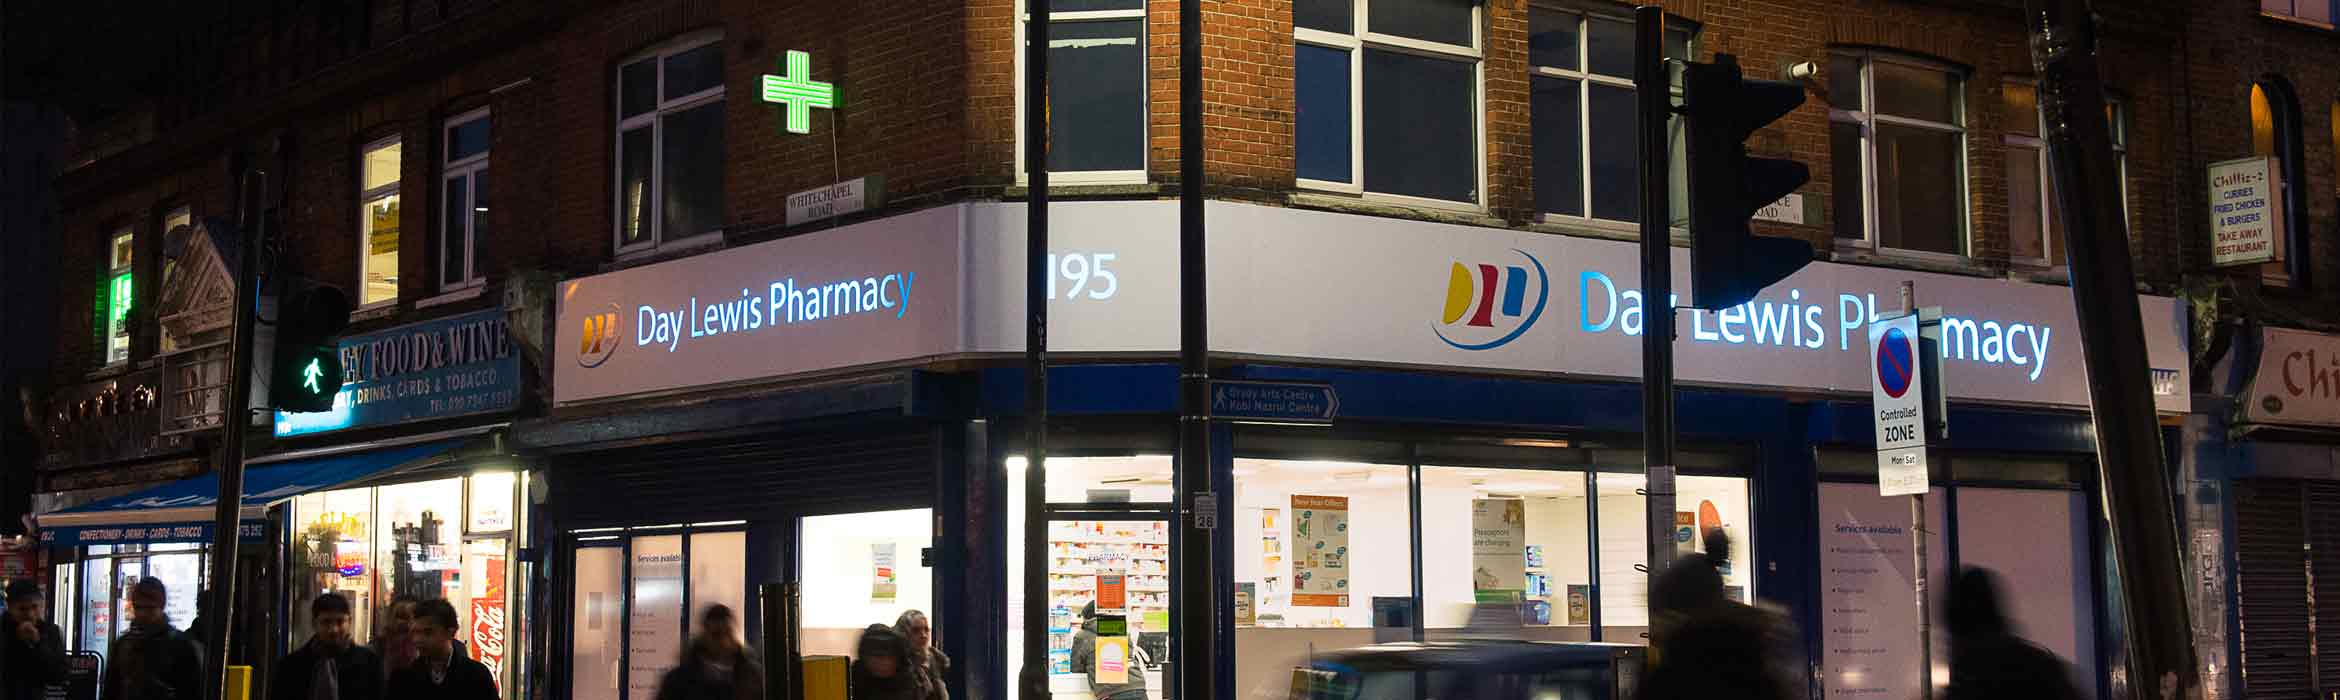 day lewis pharmacy shop front with managed print services